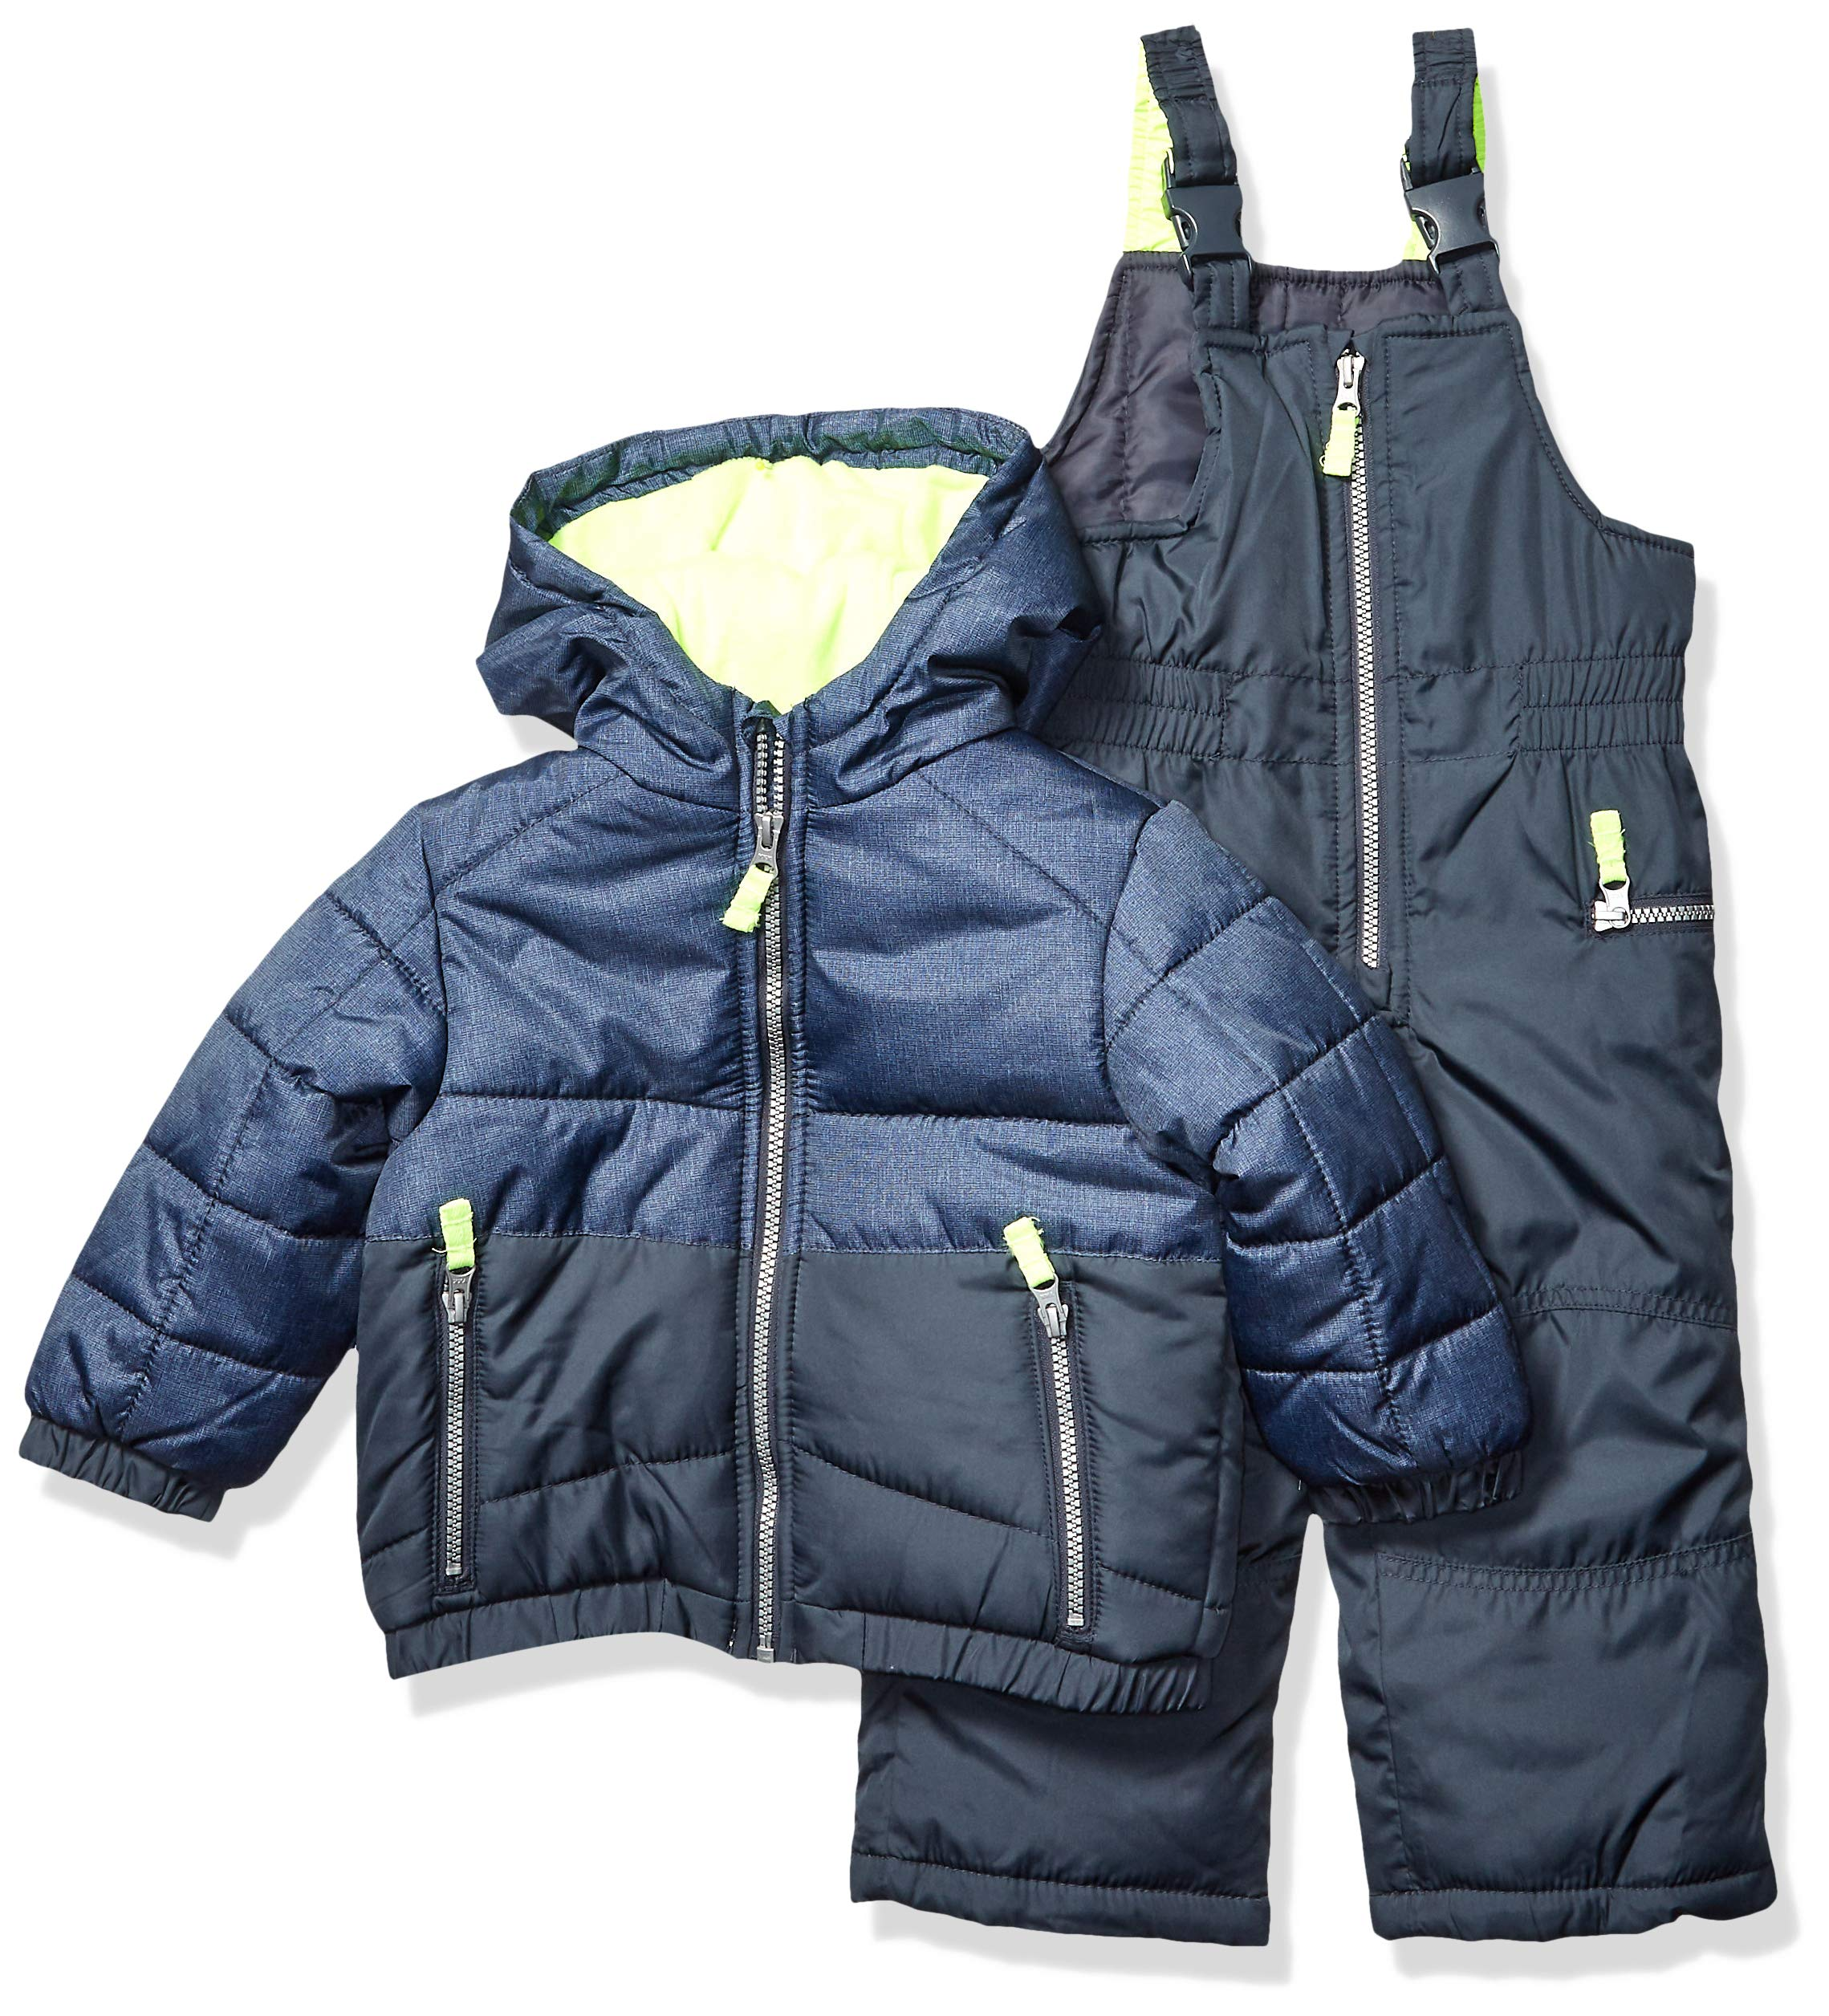 Carter's Boys' Toddler Heavyweight 2-Piece Skisuit Snowsuit, Azul with Yellow pop, 2T by Carter's